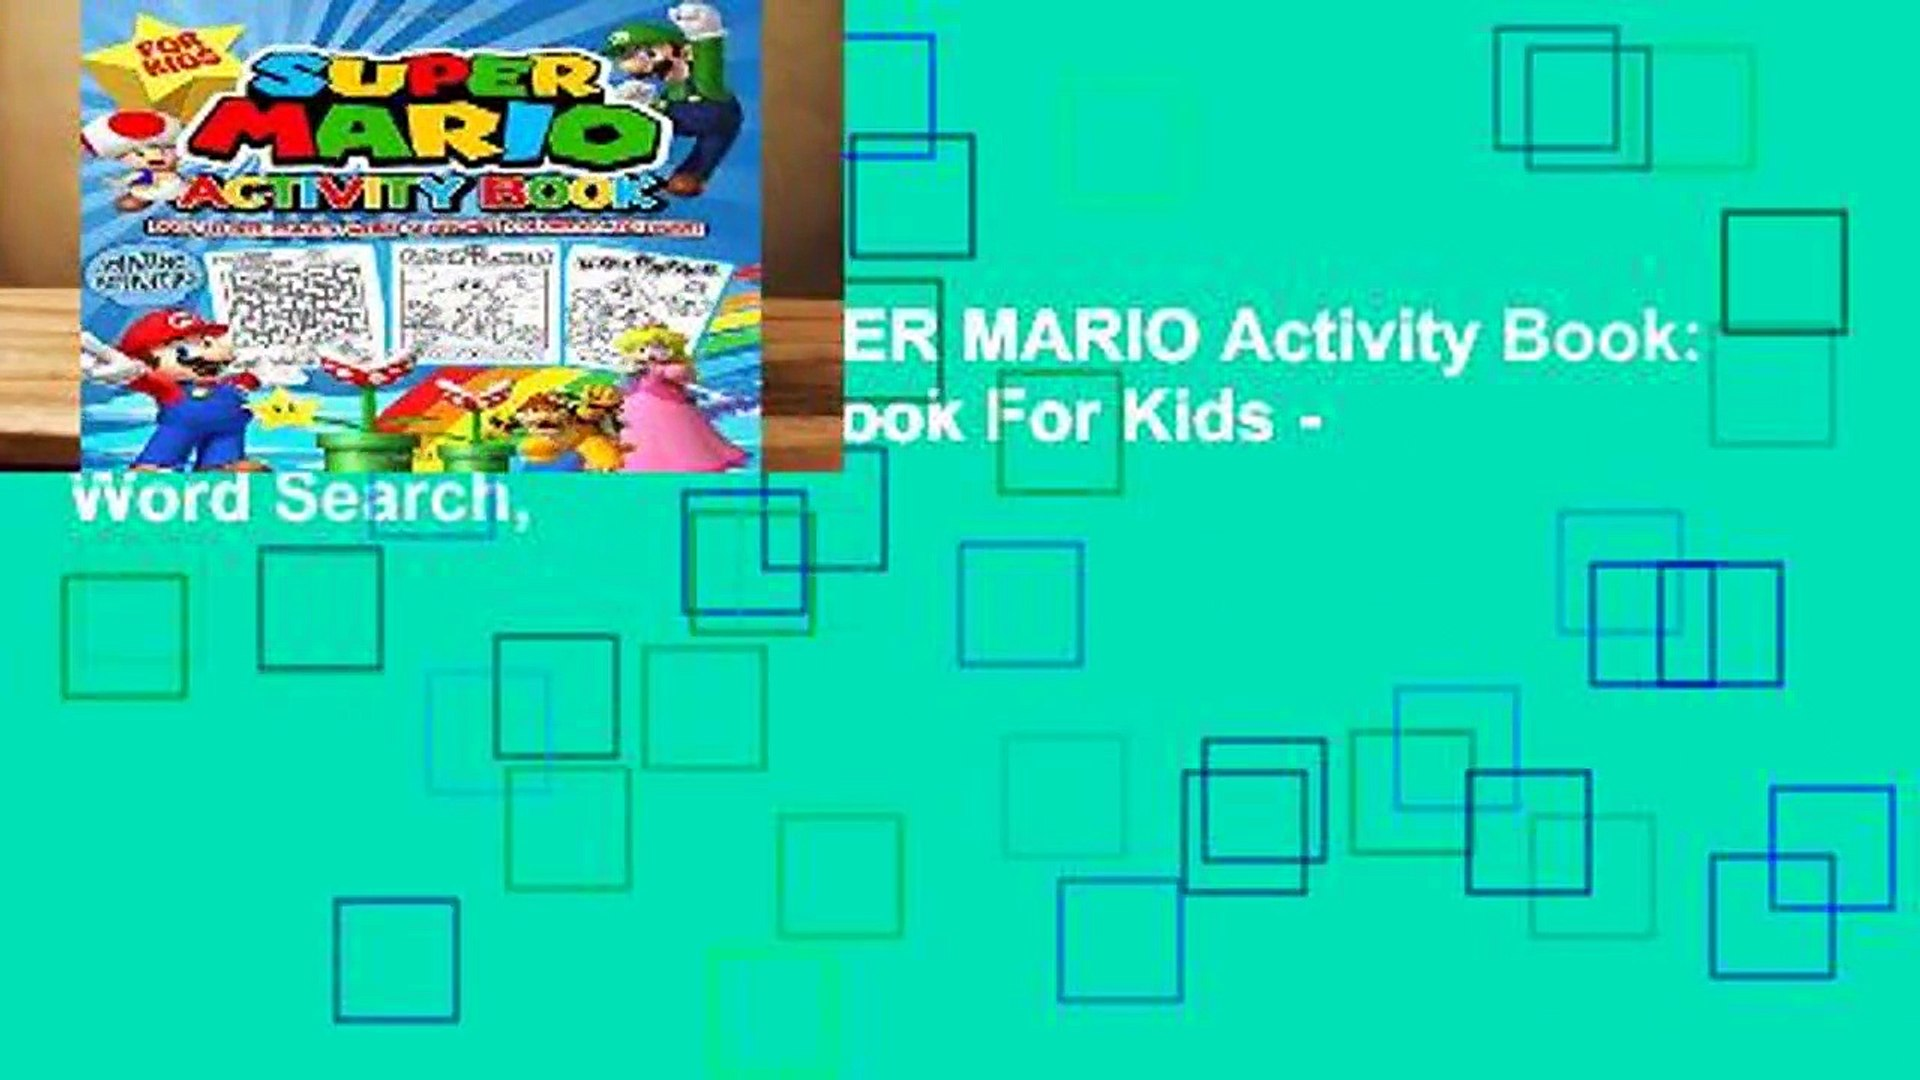 About For Books  SUPER MARIO Activity Book: Super Mario Activity Book For Kids - Word Search,